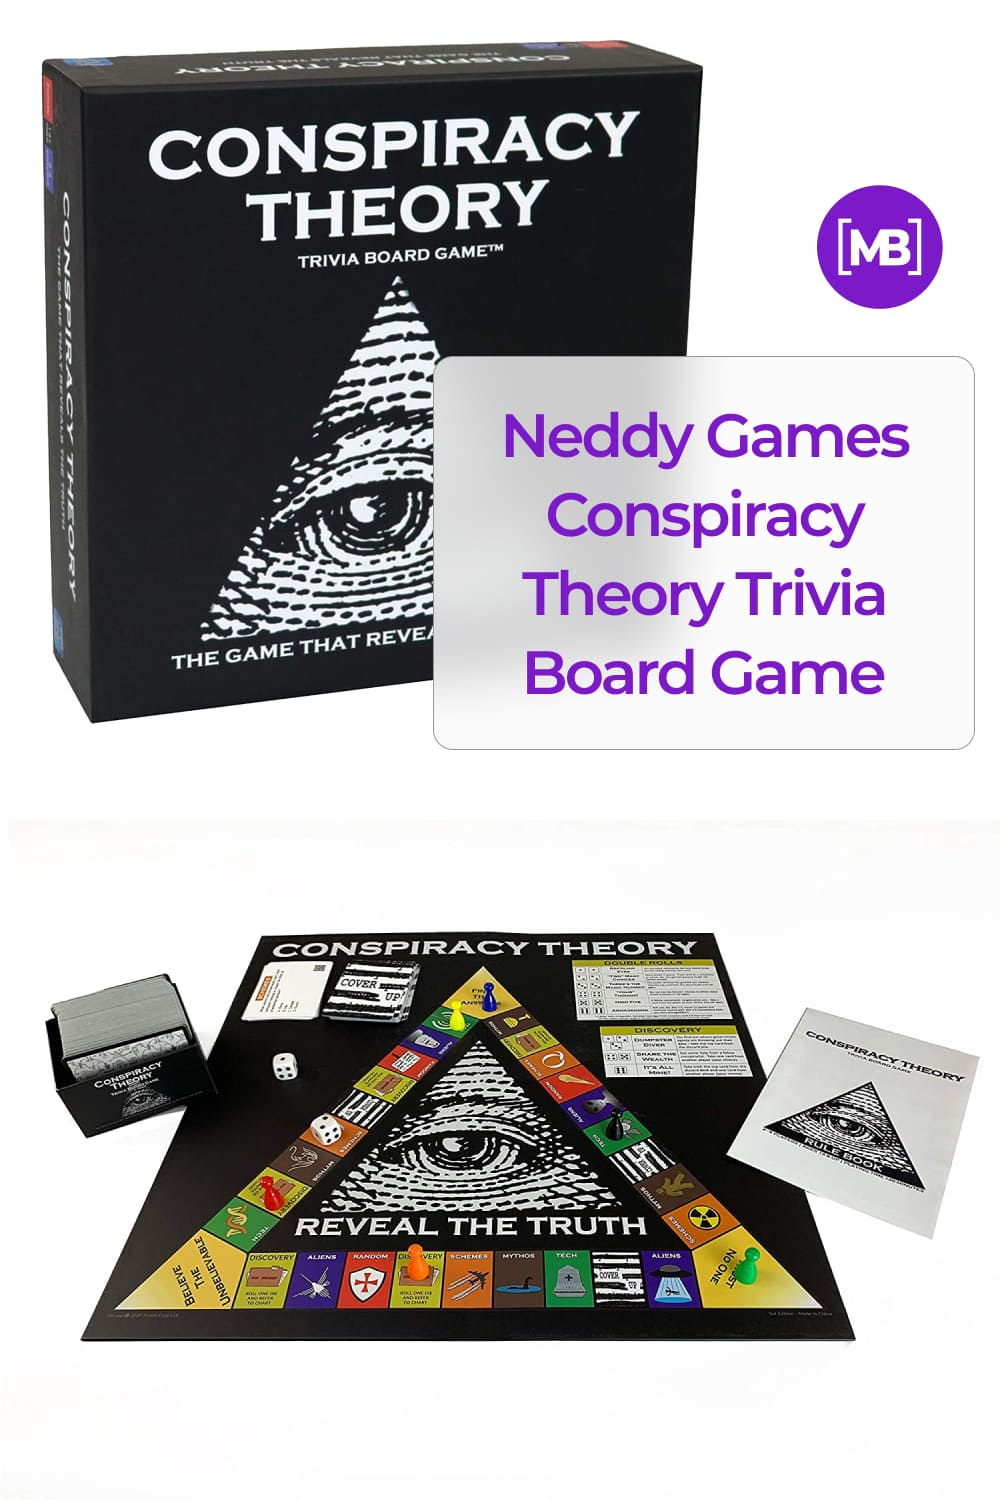 Conspiracy Theory Trivia Board Game tests your knowledge of the world of Internet conspiracies.